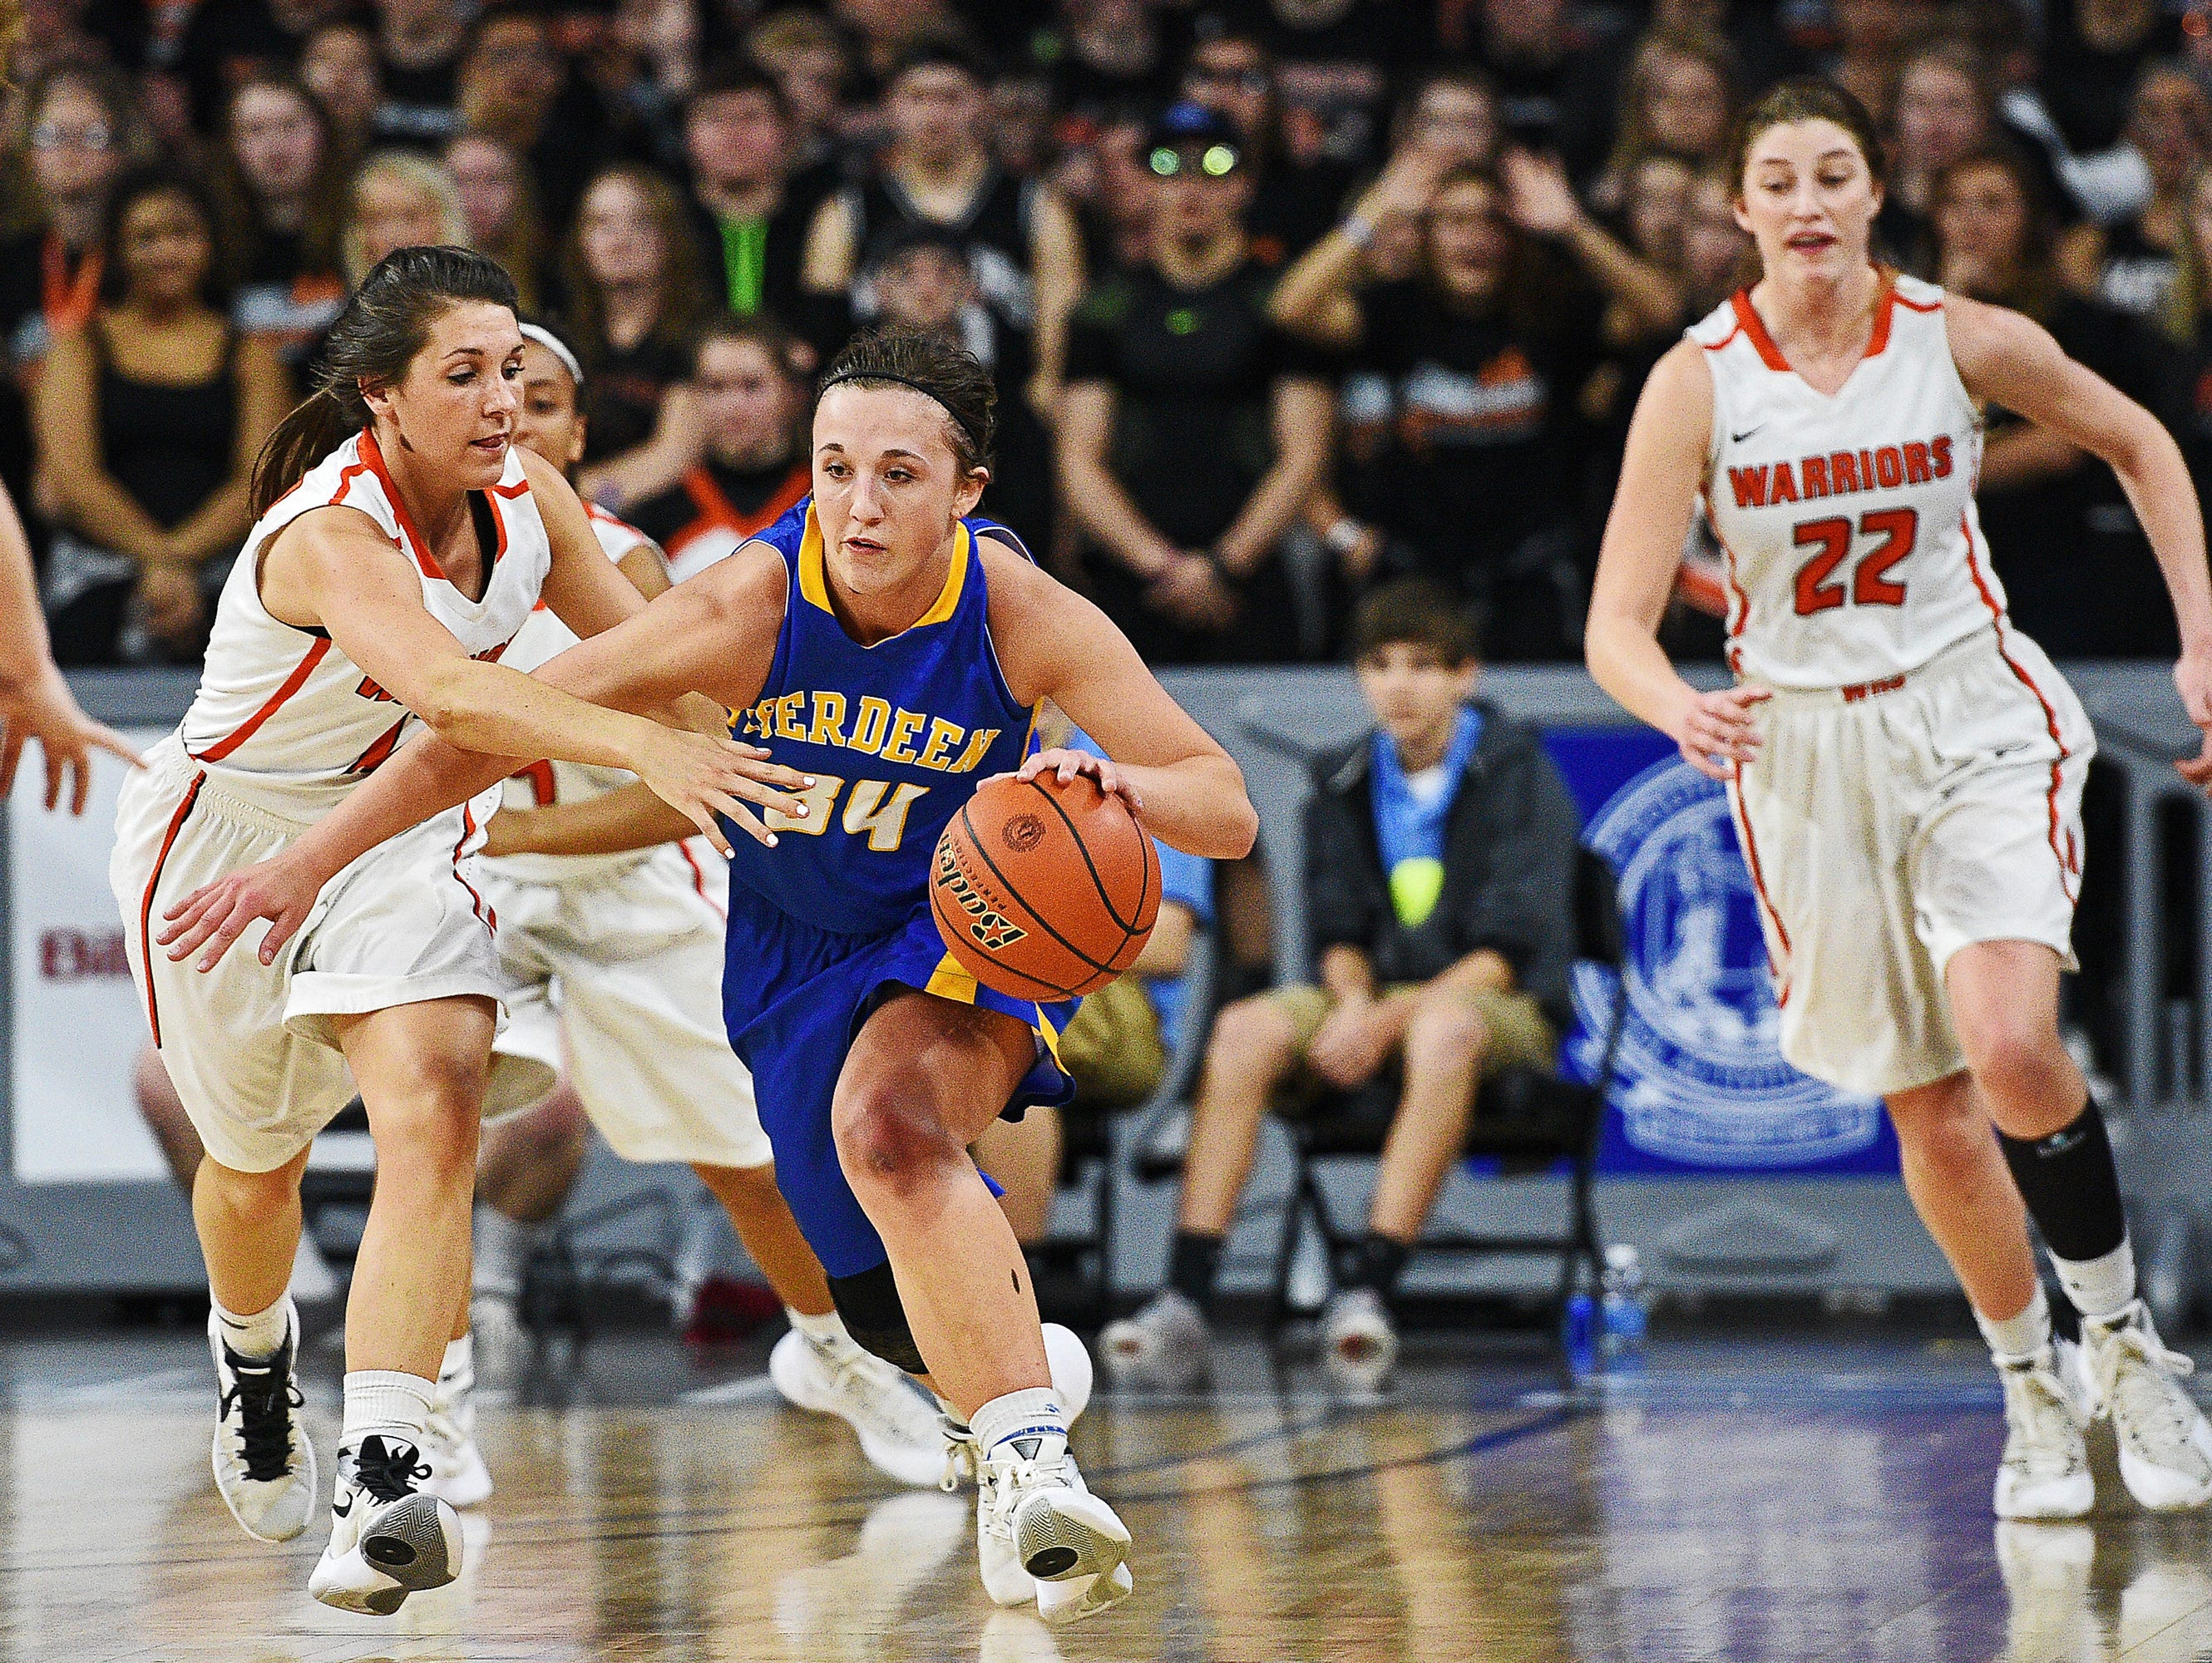 Washington's Kelsi Kearney (12) tries to steal the ball from Aberdeen Central's Brianna Kusler (34) during the South Dakota Class AA State Girls Basketball Tournament championship game Saturday, March 19, 2016, at the Denny Sanford Premier Center in Sioux Falls. Aberdeen Central beat Washington 75 to 64.